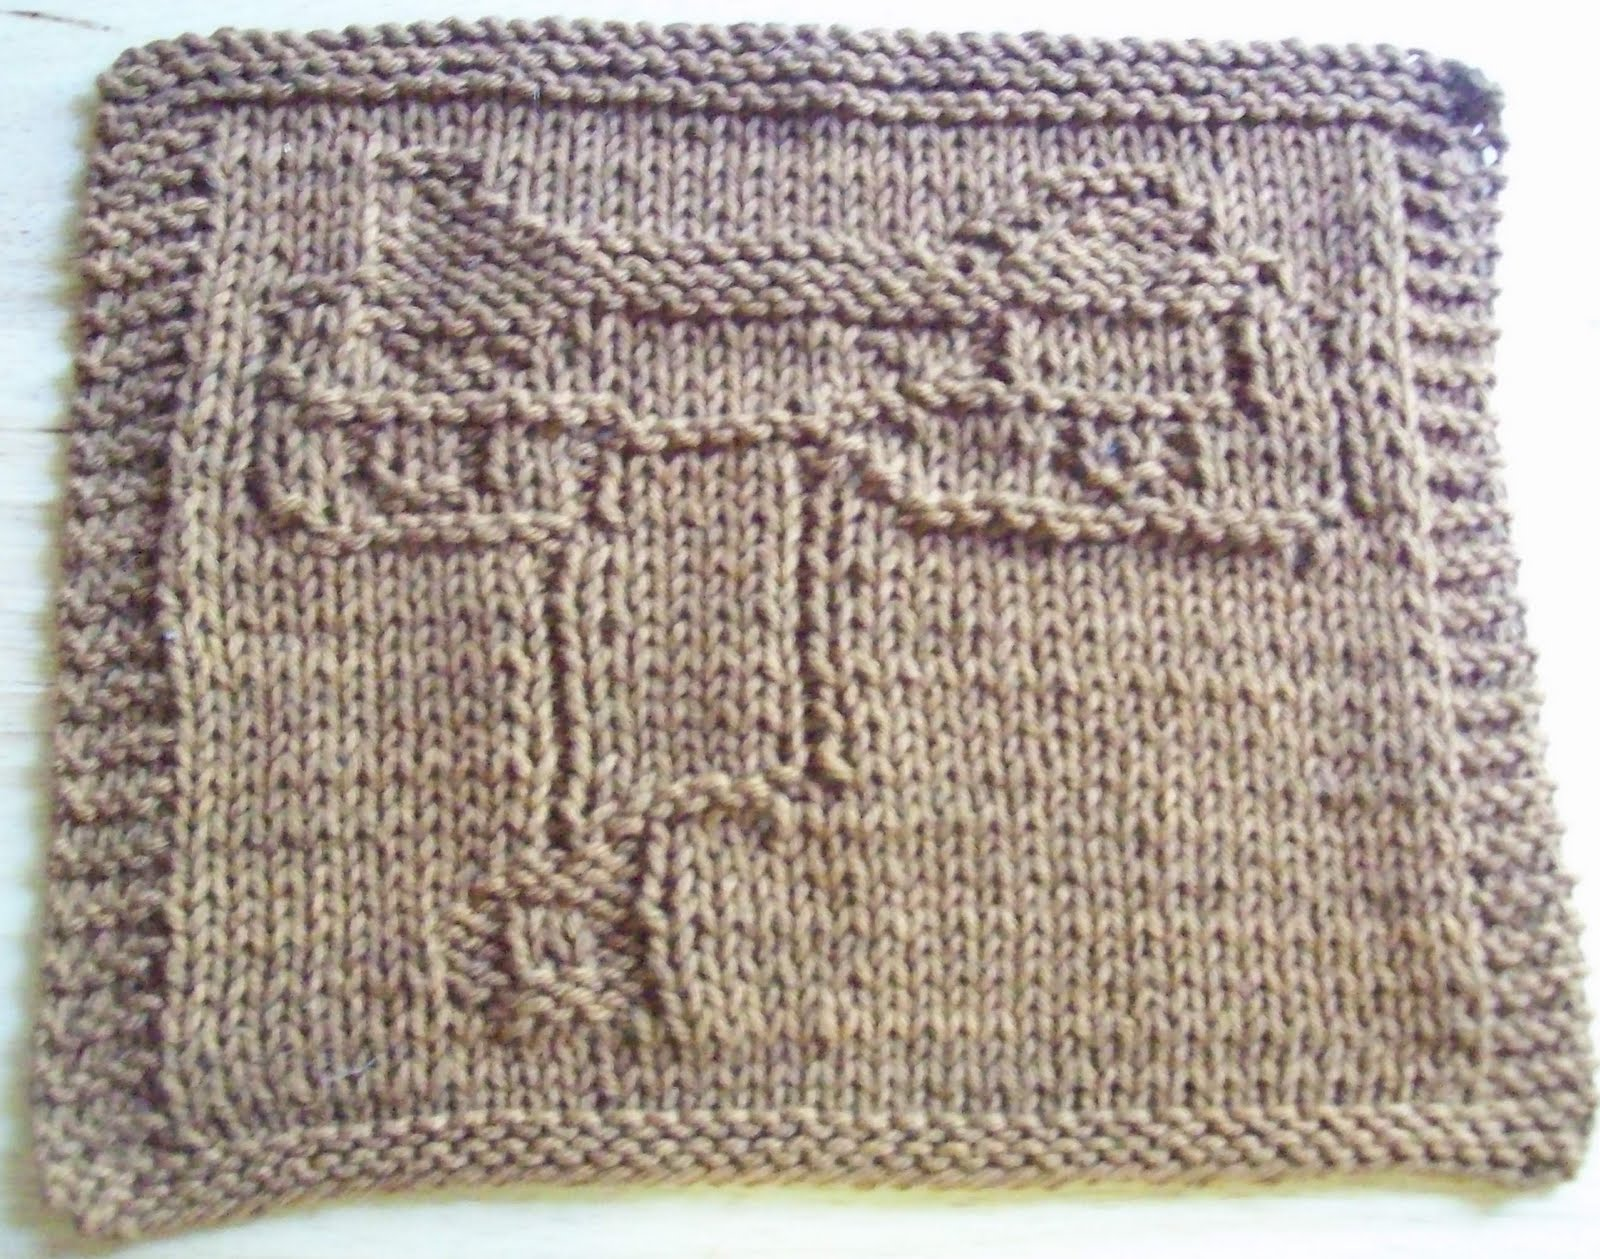 Knit Dishcloth Pattern Horse : DigKnitty Designs: Horse Saddle Knit Dishcloth Pattern